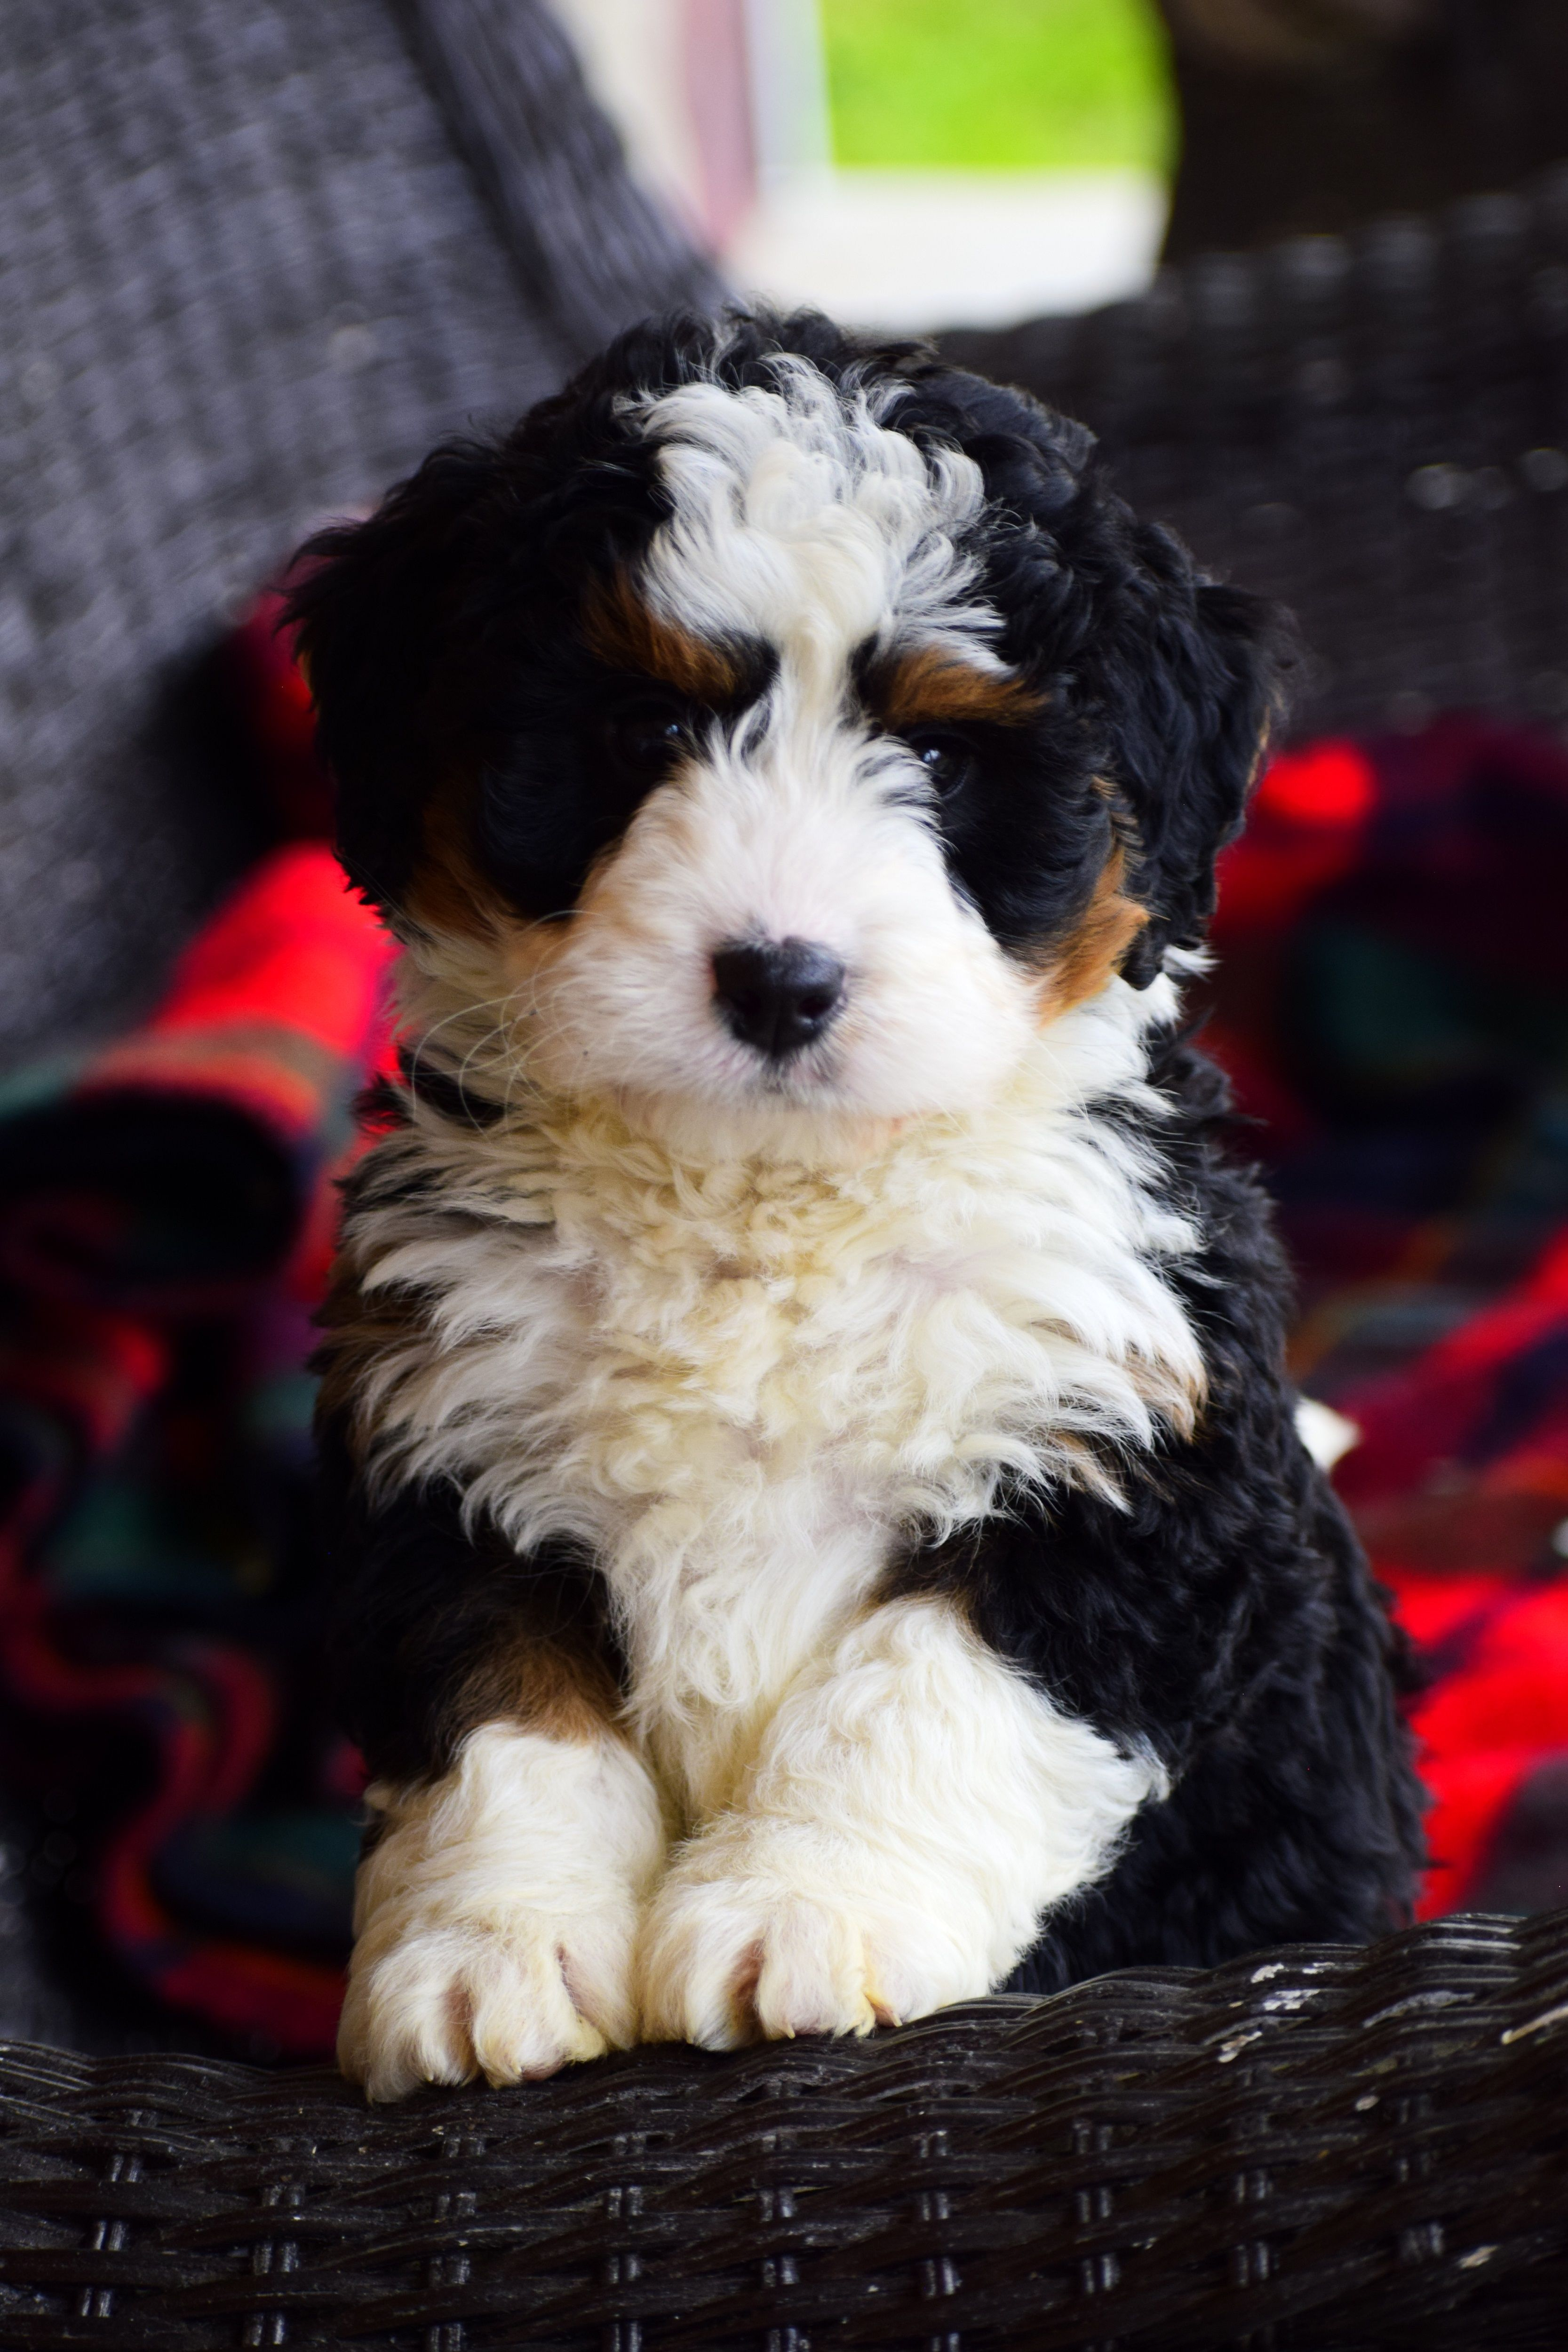 Pin By Marissa R On Dogs In 2020 Bernedoodle Puppy Puppies Mini Bernedoodle